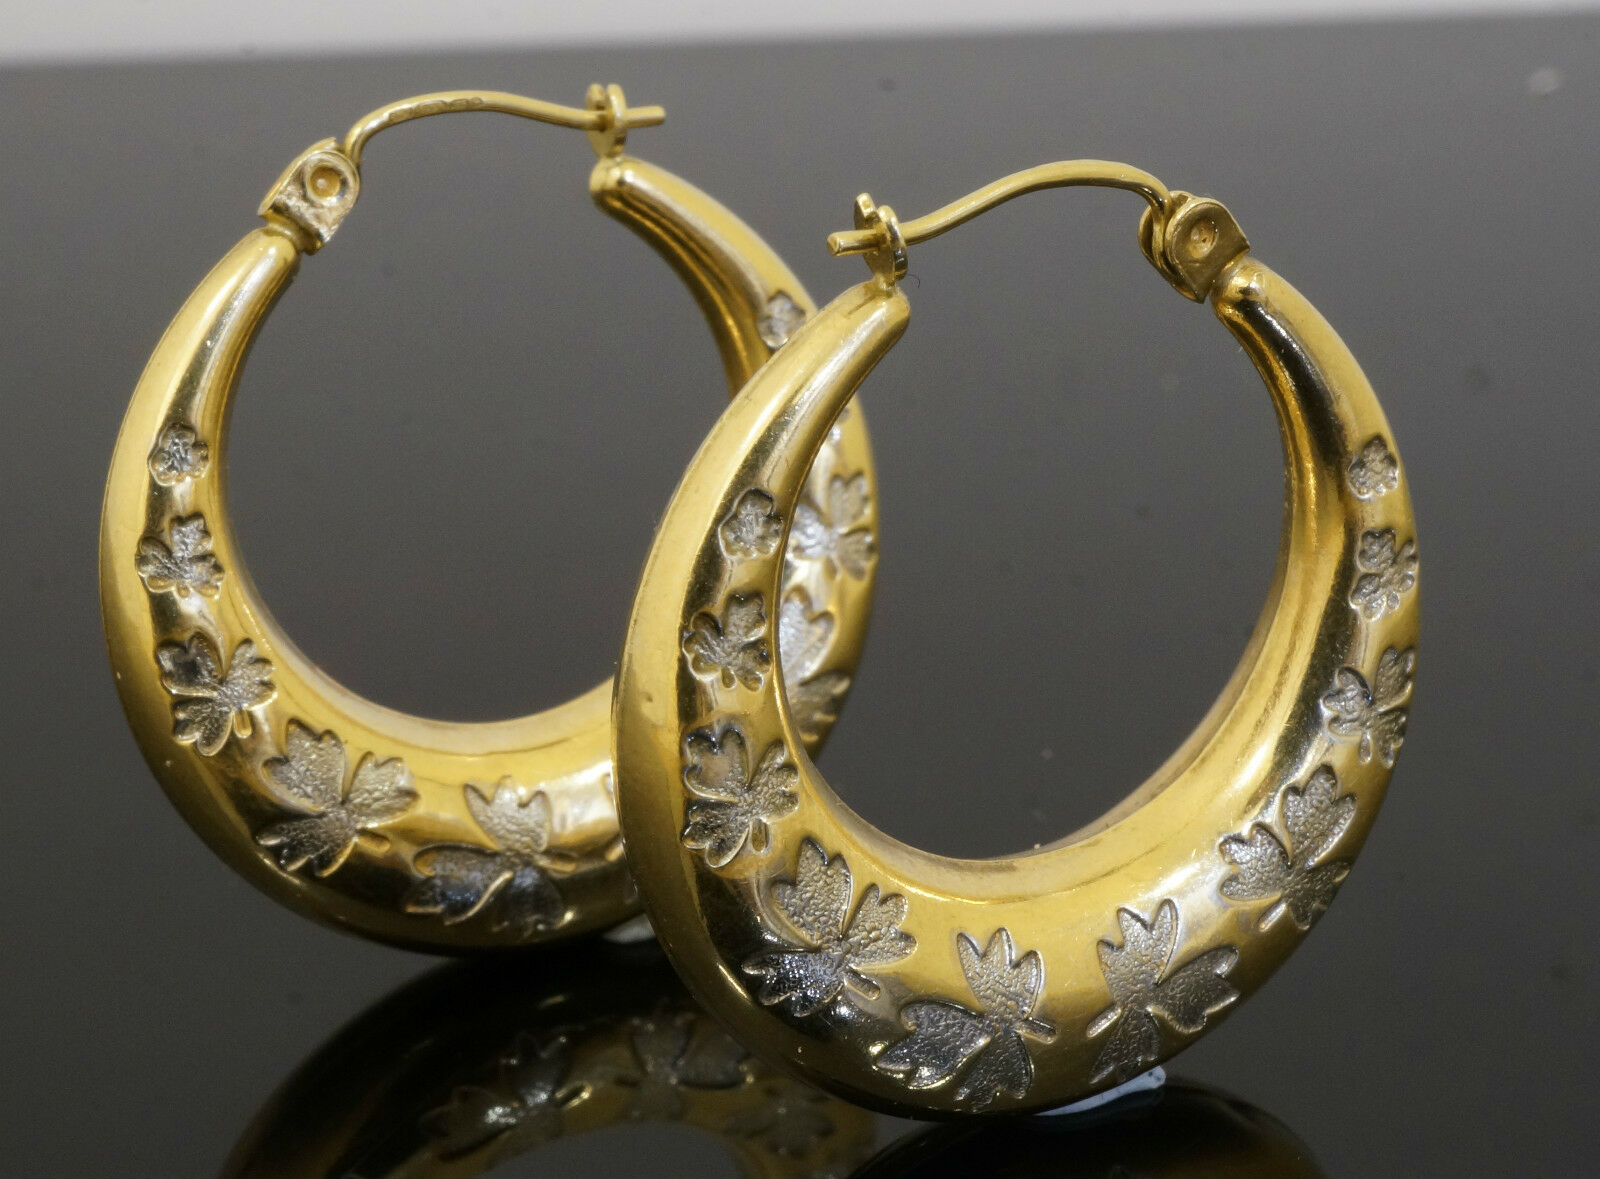 9carat Yellow And White Gold Round Leaf Patterned Hoop